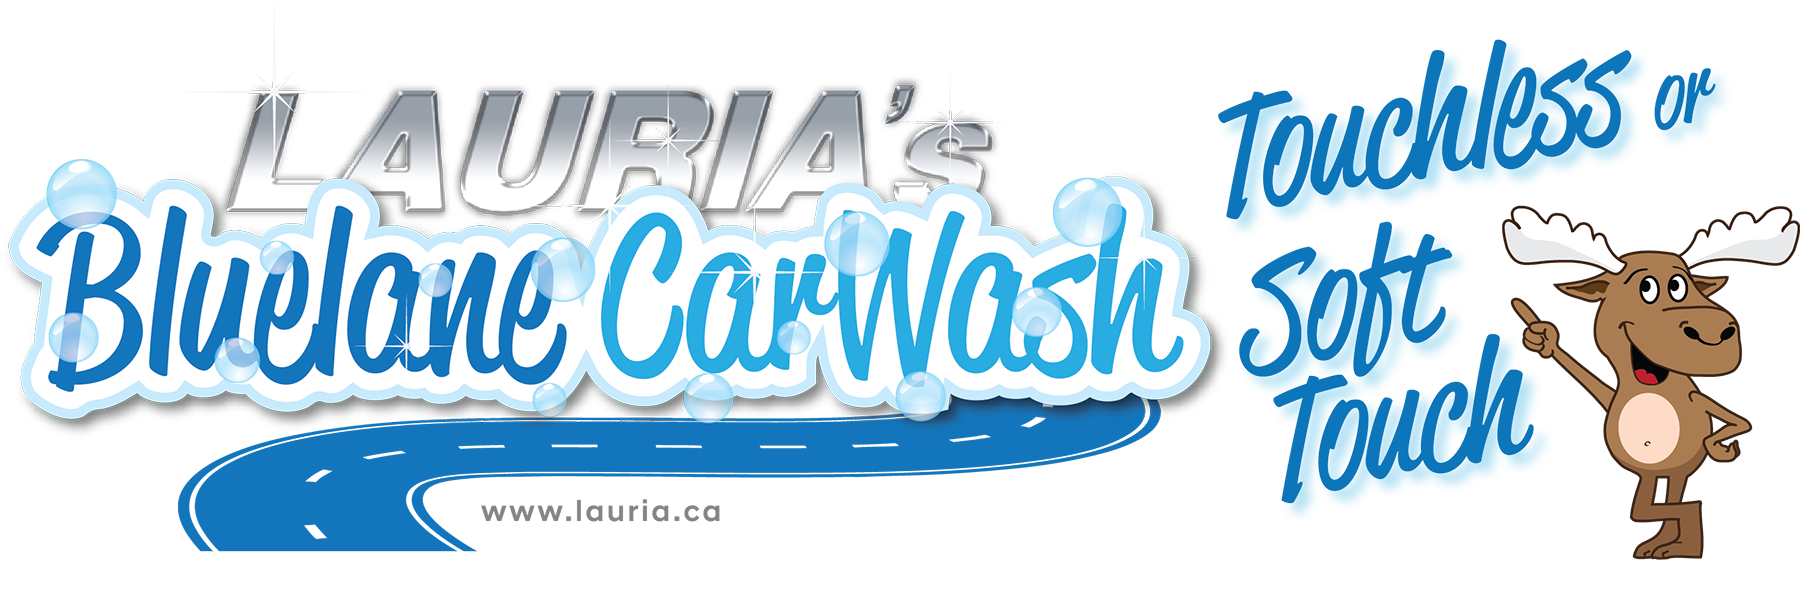 Lauria's Blue lane Car Wash